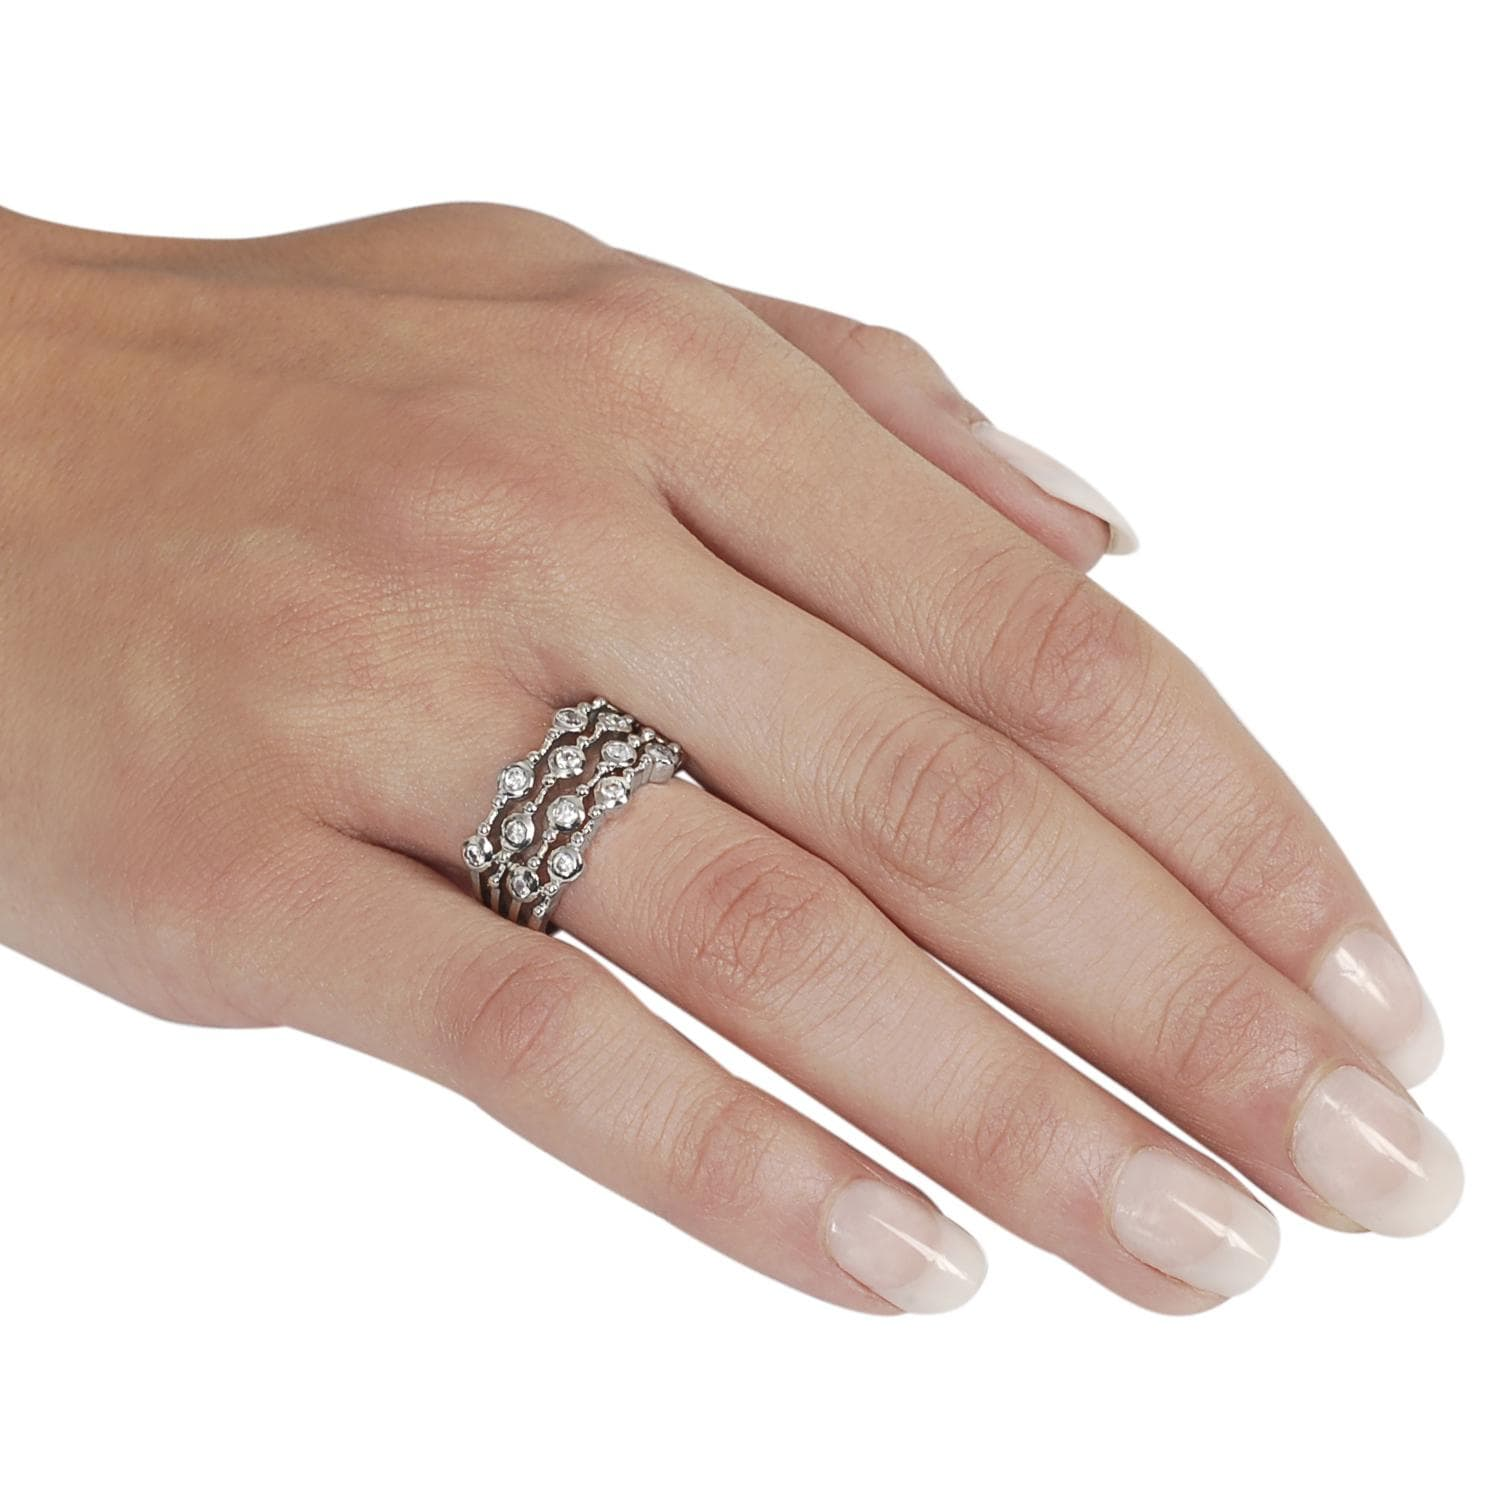 Journee Collection Silvertone Bezel-set Cubic Zirconia-accented Four Strand Ring - Thumbnail 2